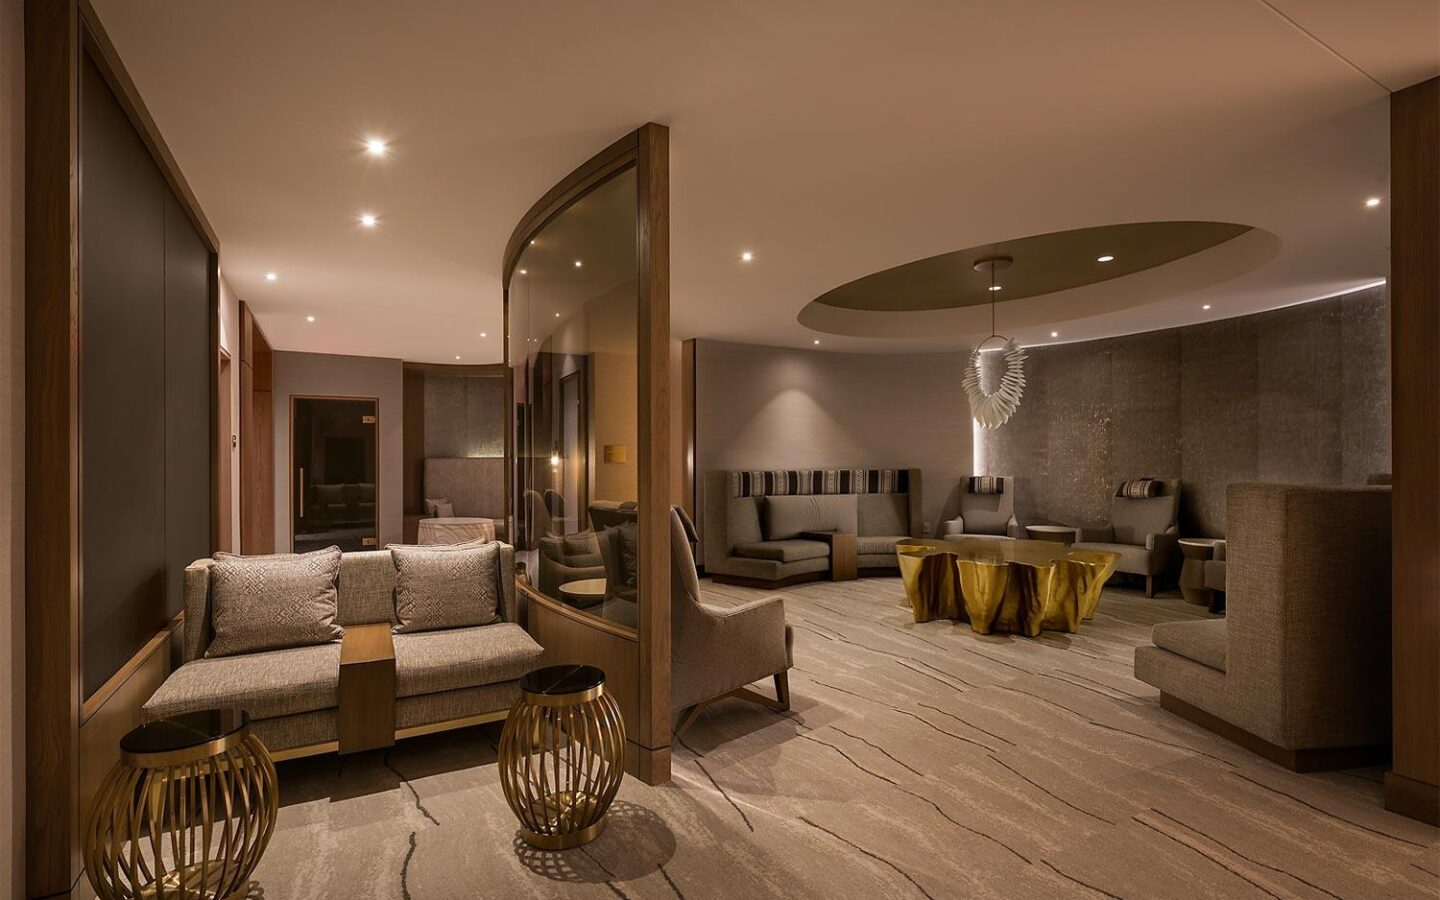 a luxury spa lounge area with comfortable seating and dim lighting